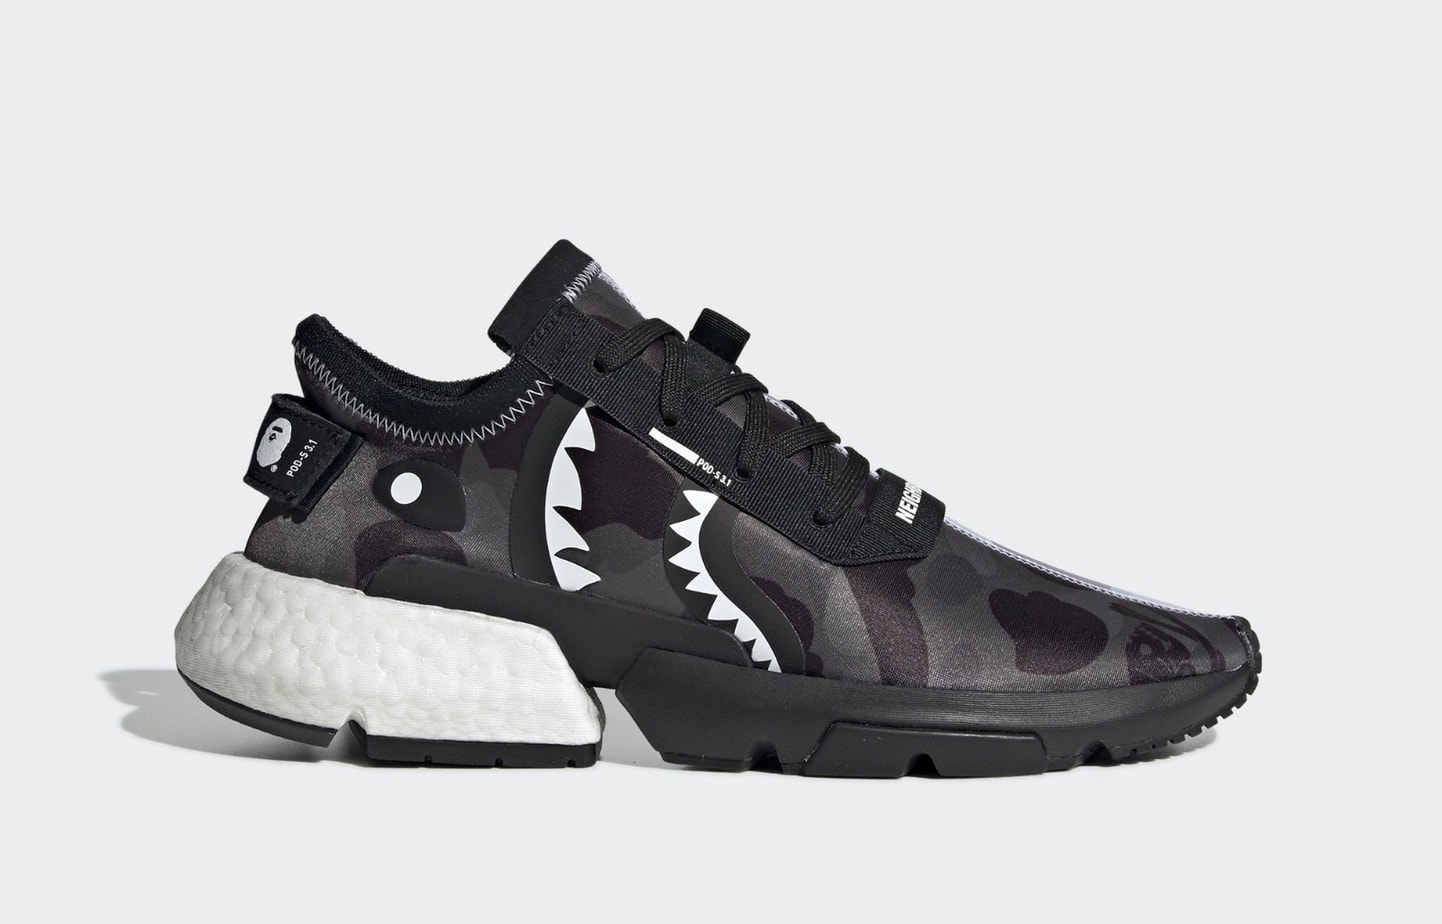 08b746347 Bape and Neighborhood are teaming up with adidas yet again this year